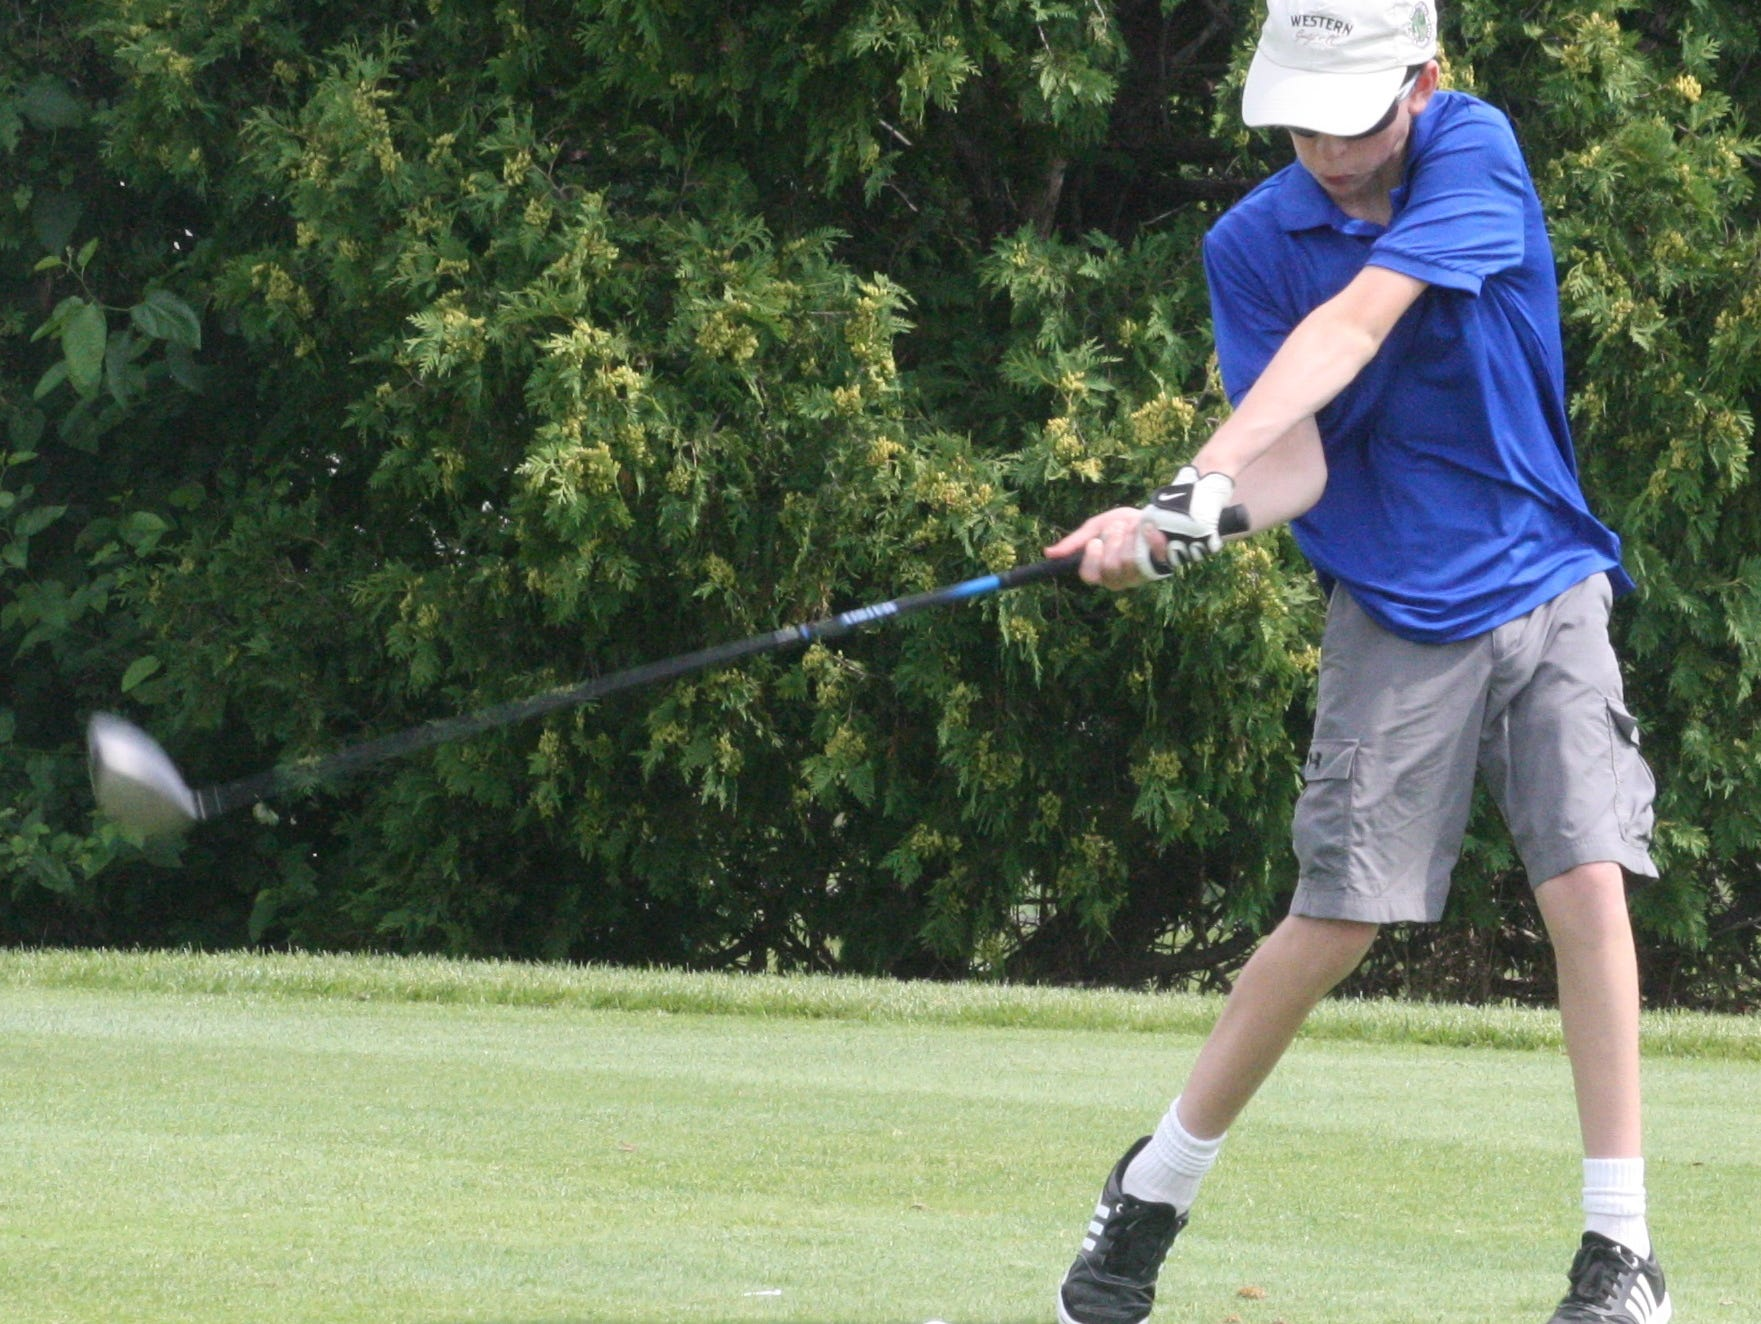 Danny Colleran of Farmington Hills rips a drive down the middle of the fairway Wednesday afternoon.